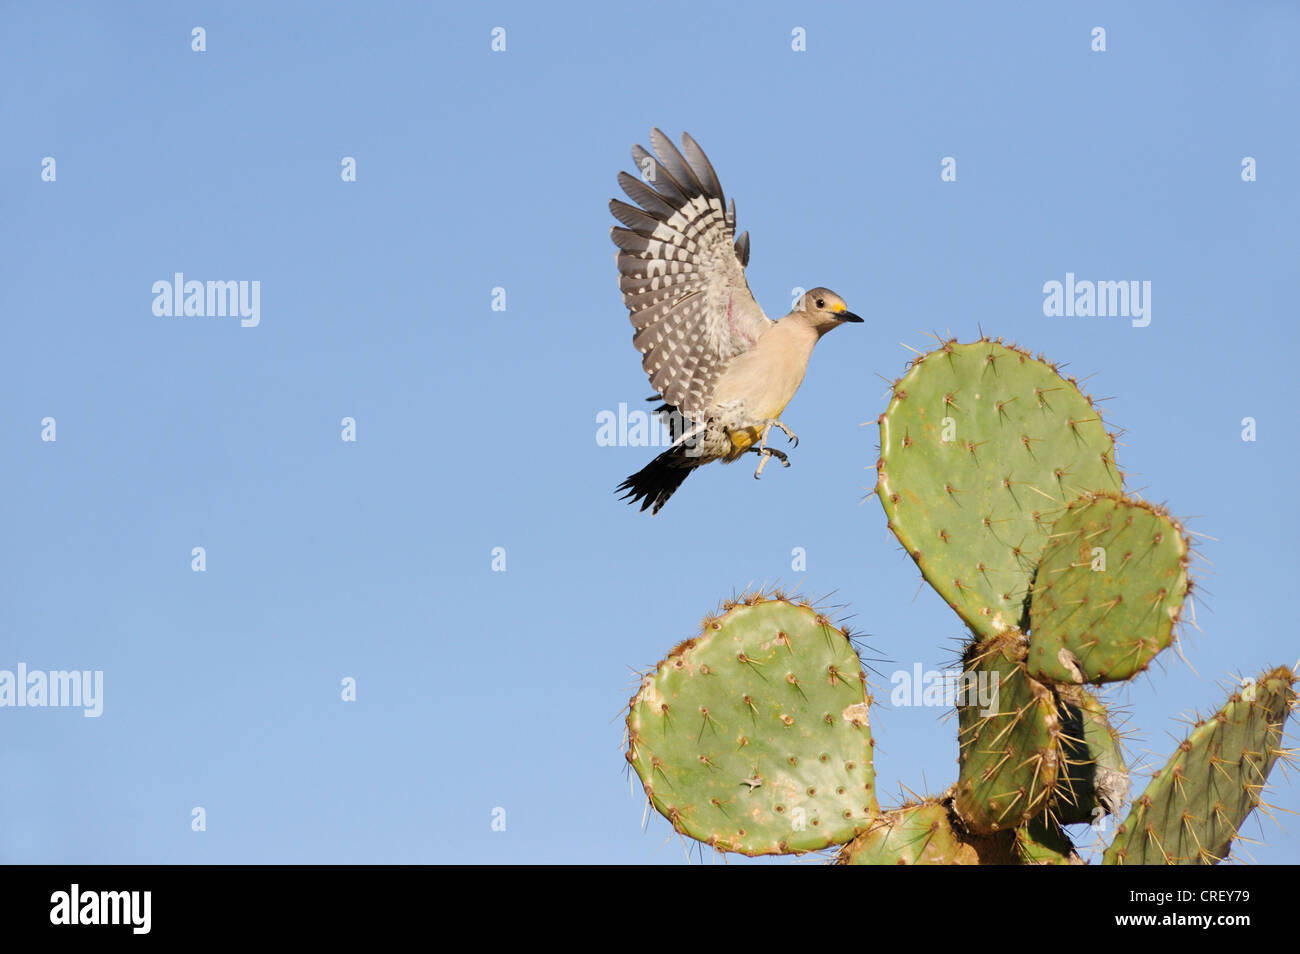 Golden-fronted Woodpecker (Melanerpes aurifrons), female landing on Texas Prickly Pear Cactus (Opuntia lindheimeri), Texas Stock Photo